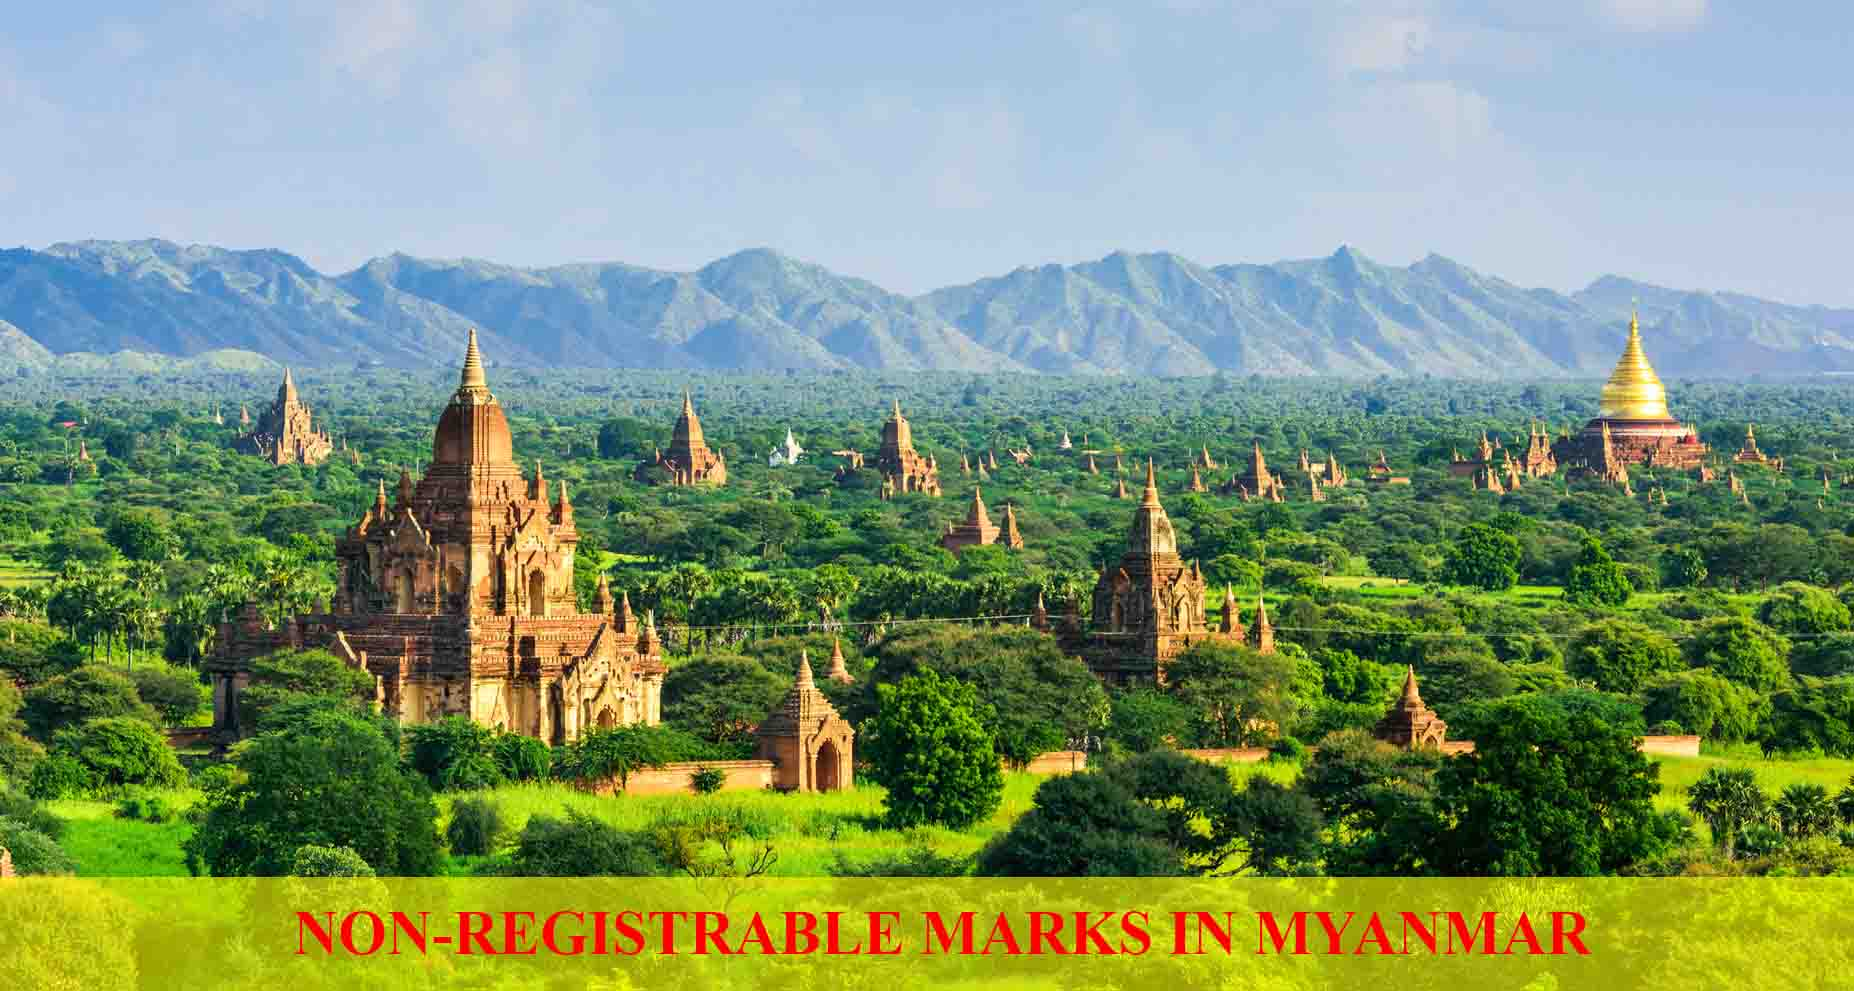 NON-REGISTRABLE MARKS IN MYANMAR